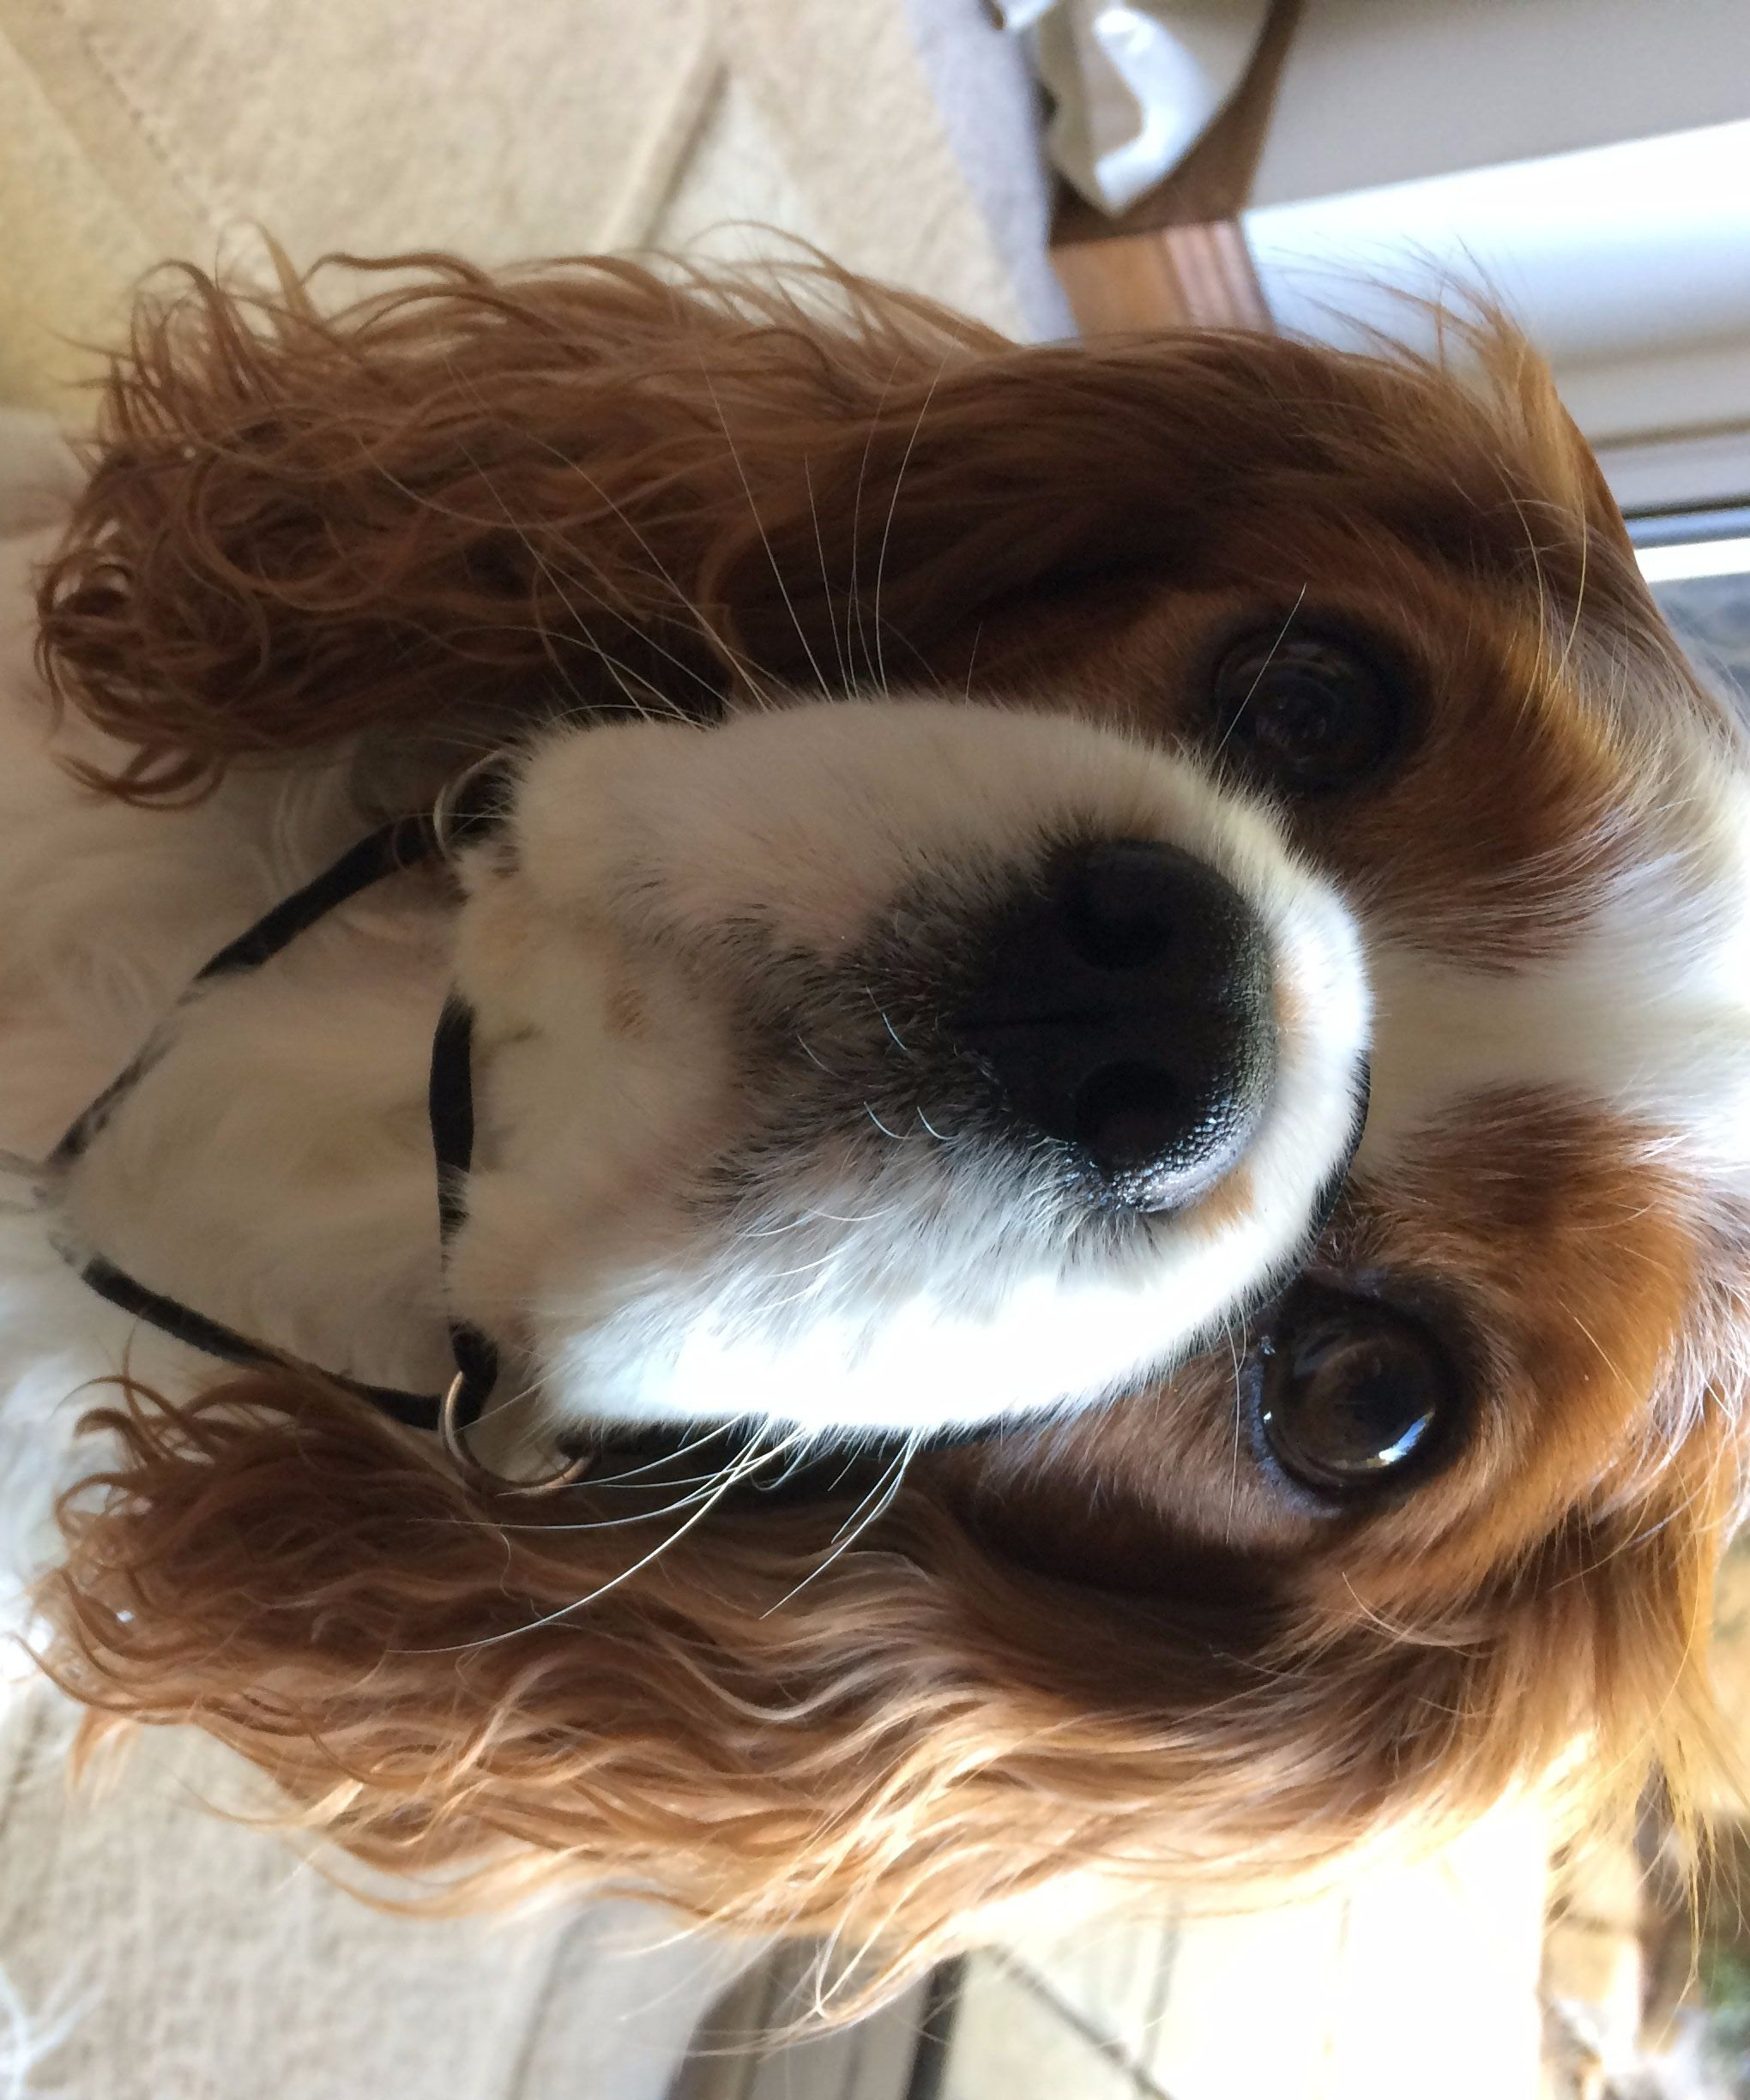 DIY Dog Halter/ Head Collar: 7 Steps (with Pictures)